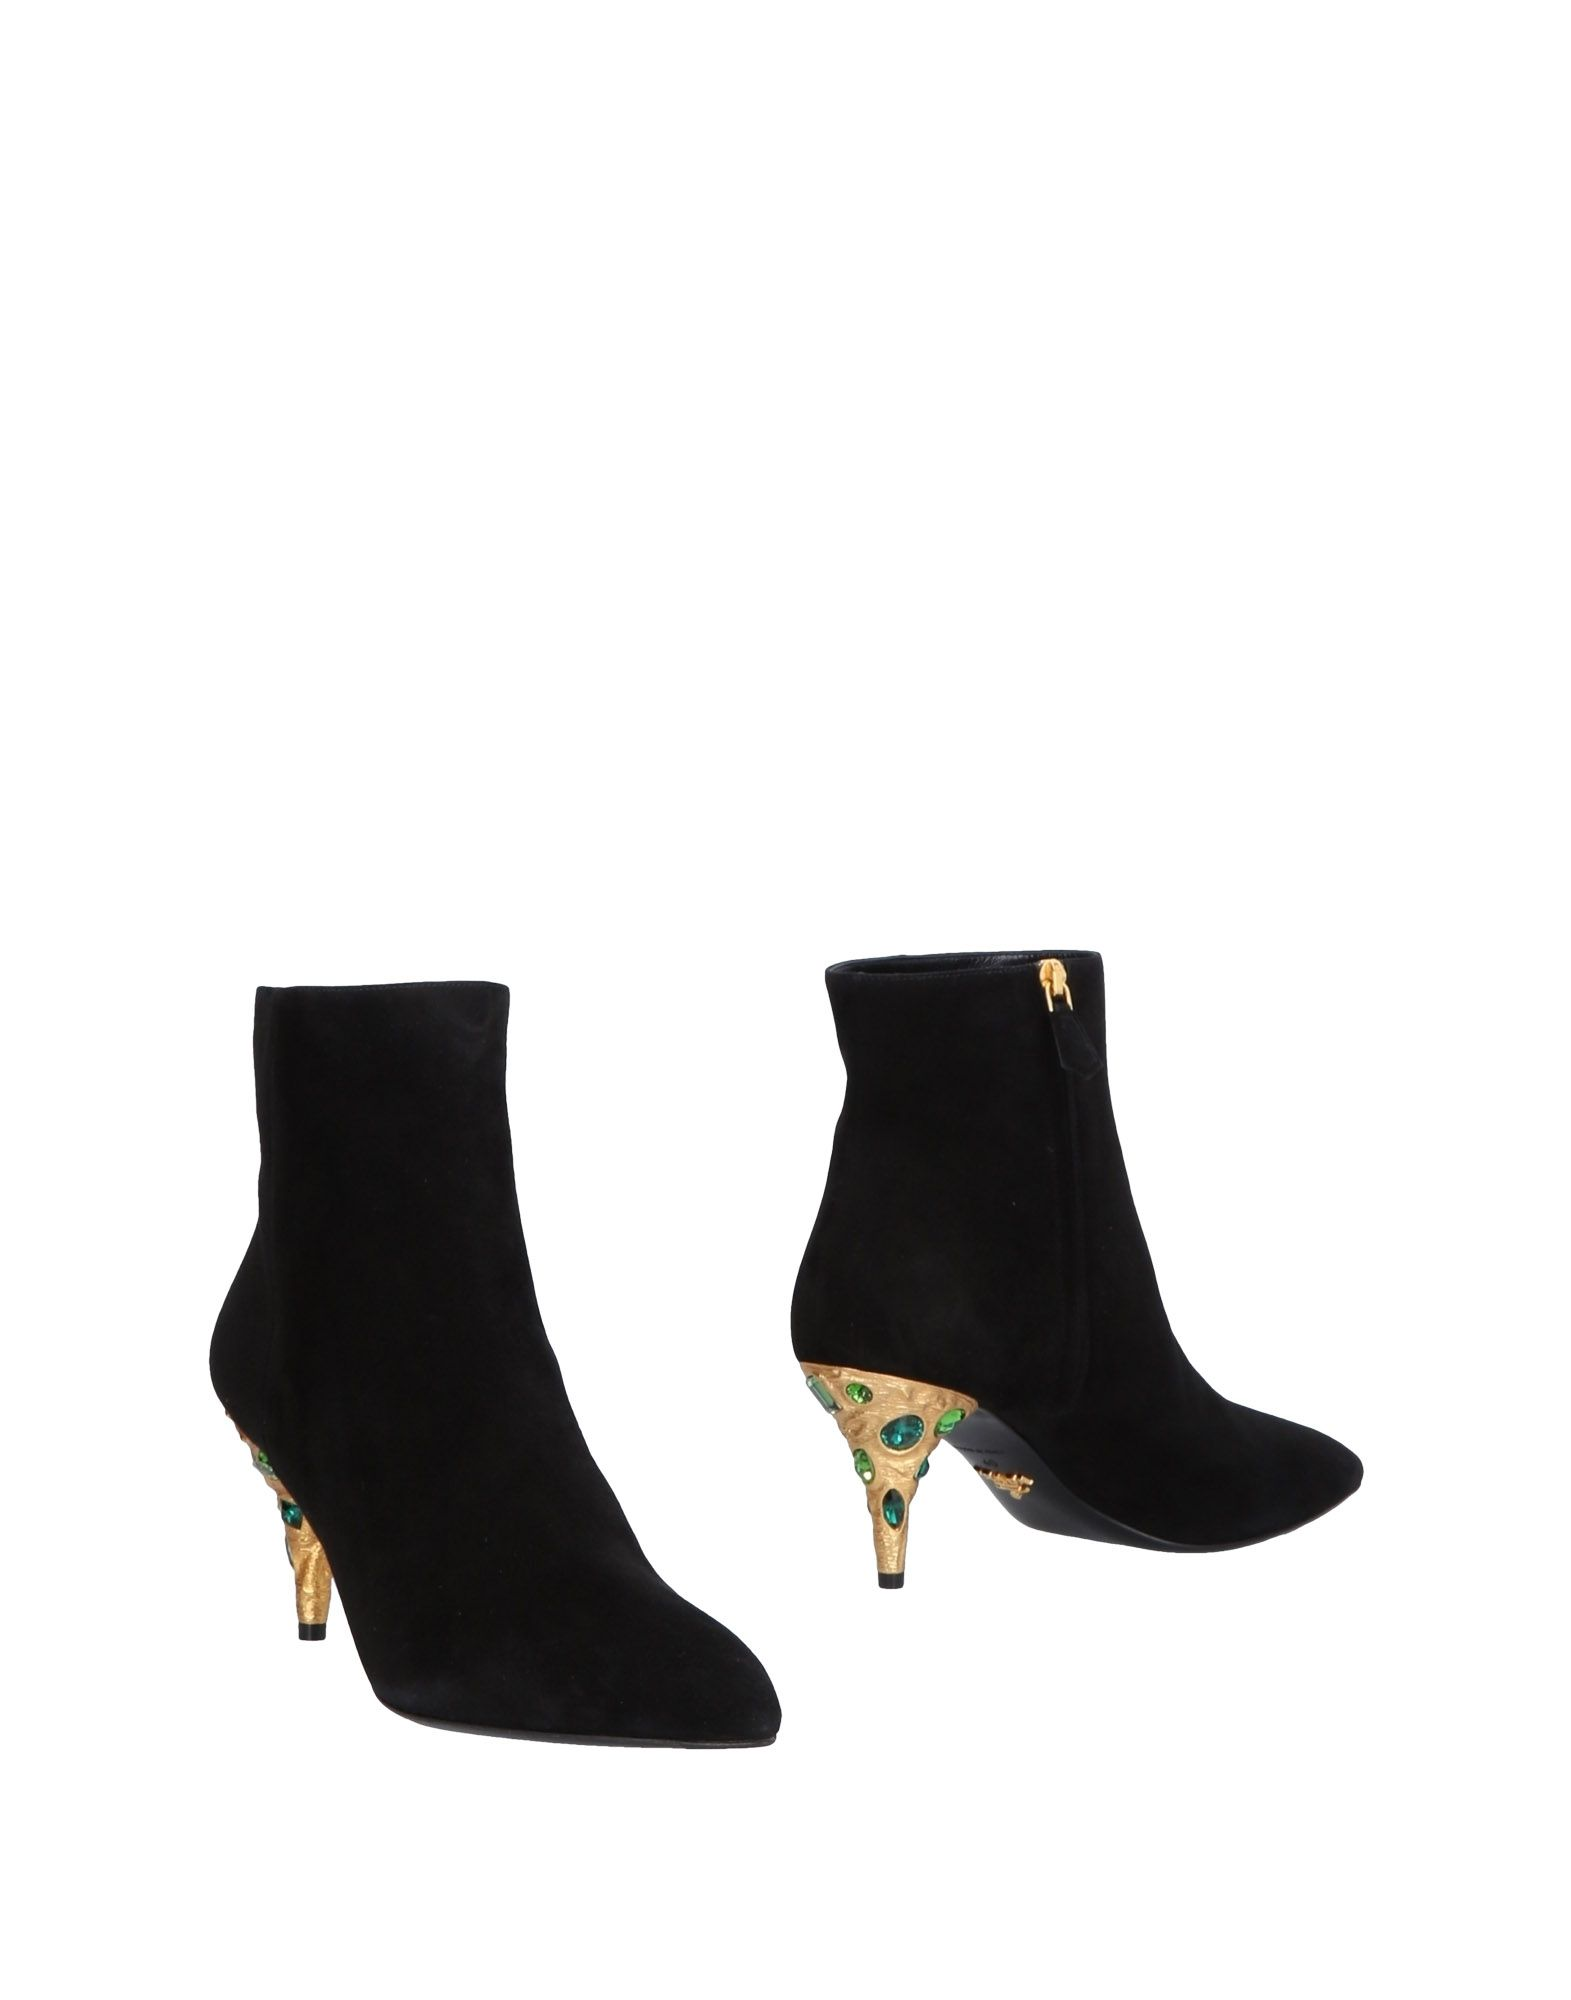 Prada Ankle Boot Boots - Women Prada Ankle Boots Boot online on  United Kingdom - 11464662QX 551a22